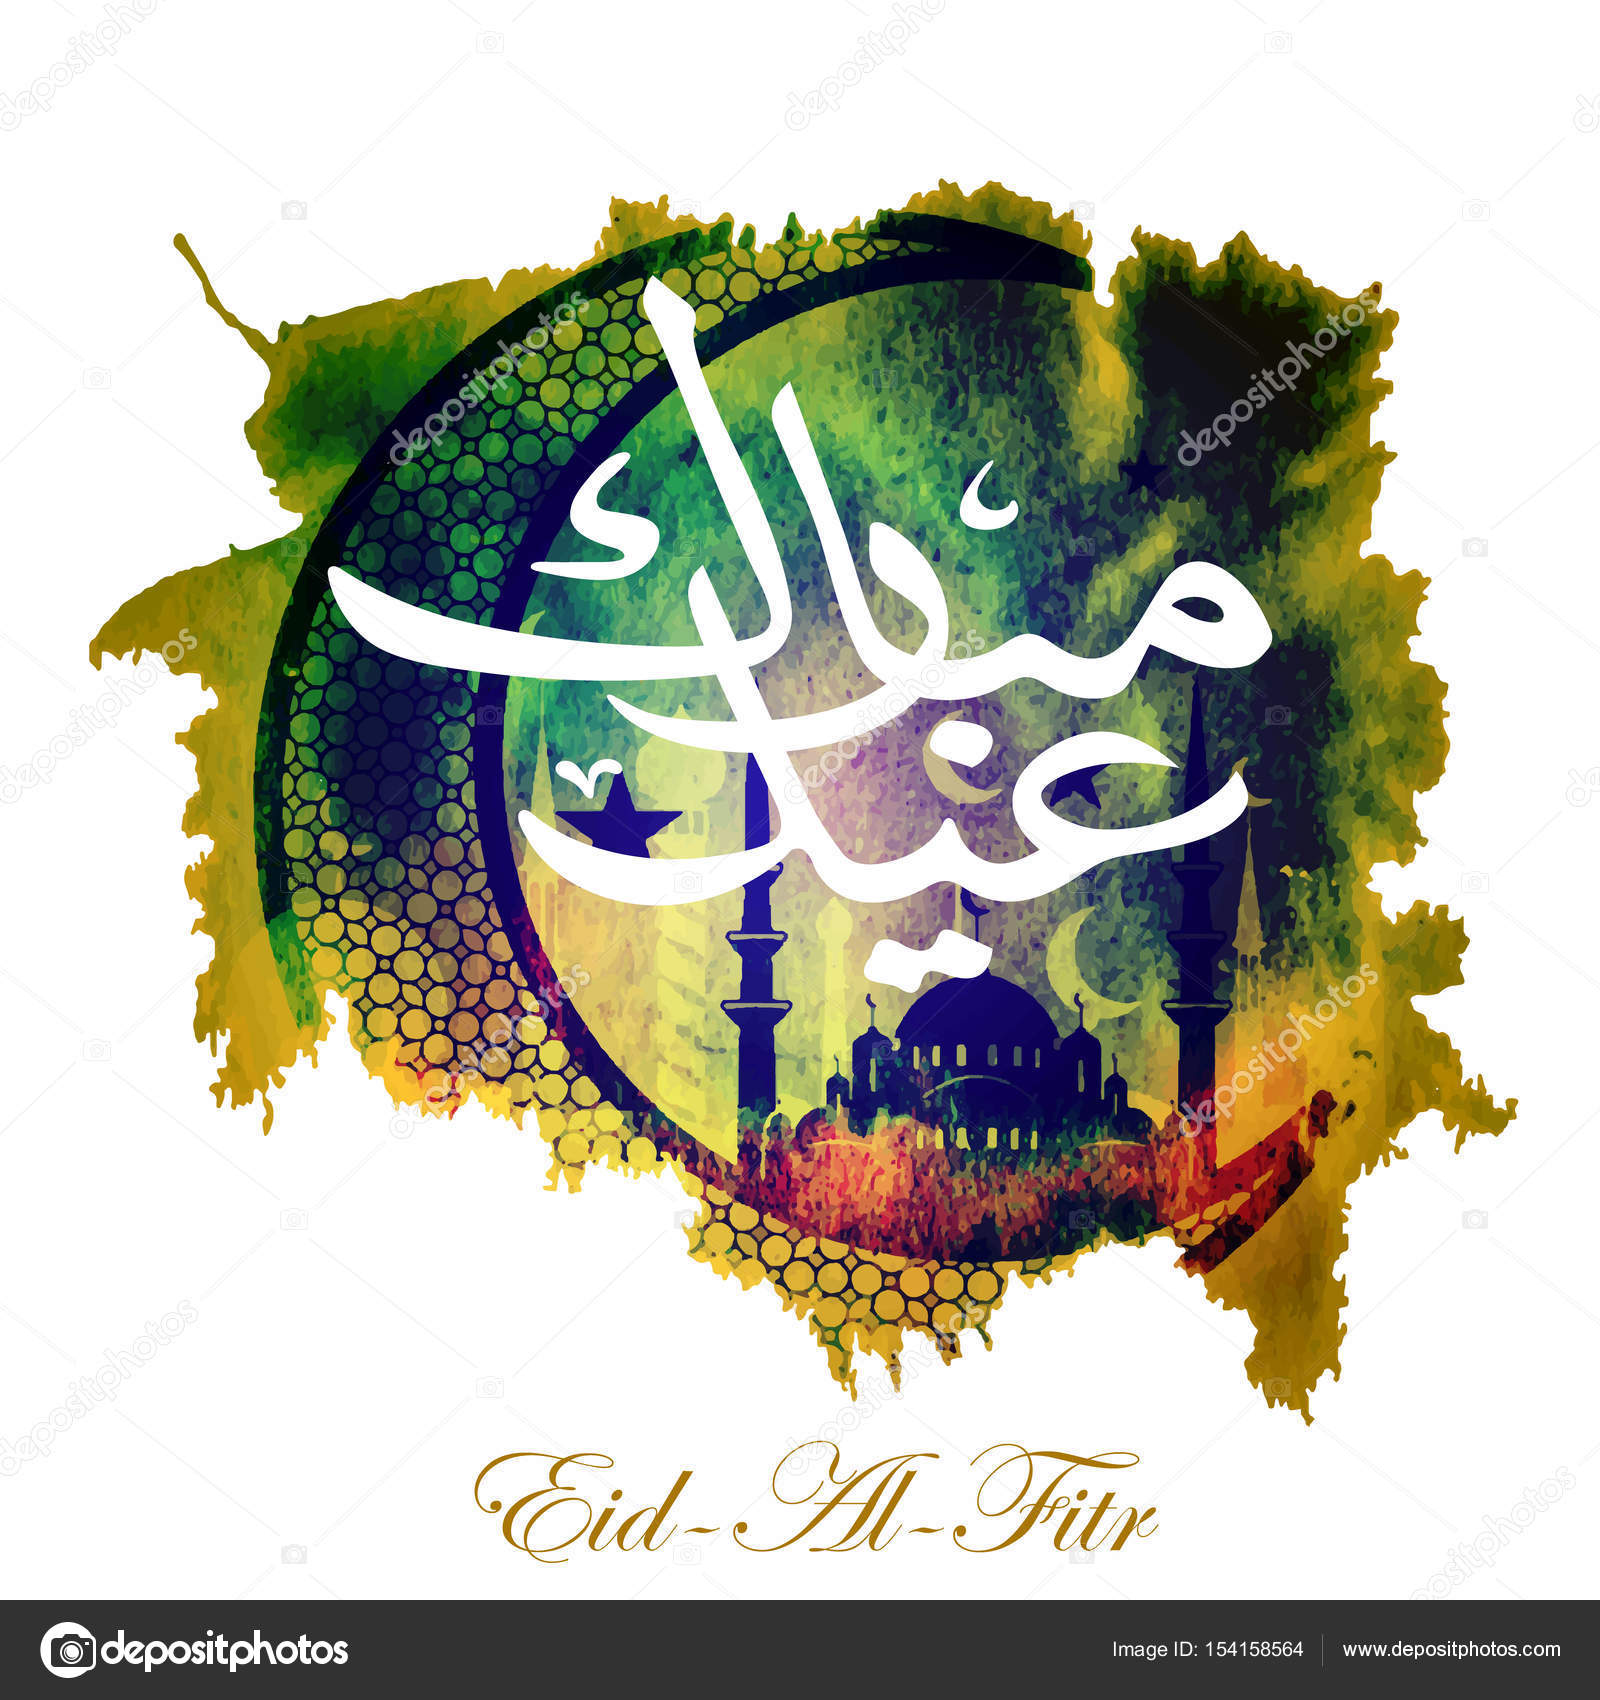 Eid al fitr greeting card stock photo vklim2011 154158564 calligraphy of arabic text eid al fitr feast of breaking the fast holiday greeting card in retro style text in arabic happy holiday kristyandbryce Choice Image